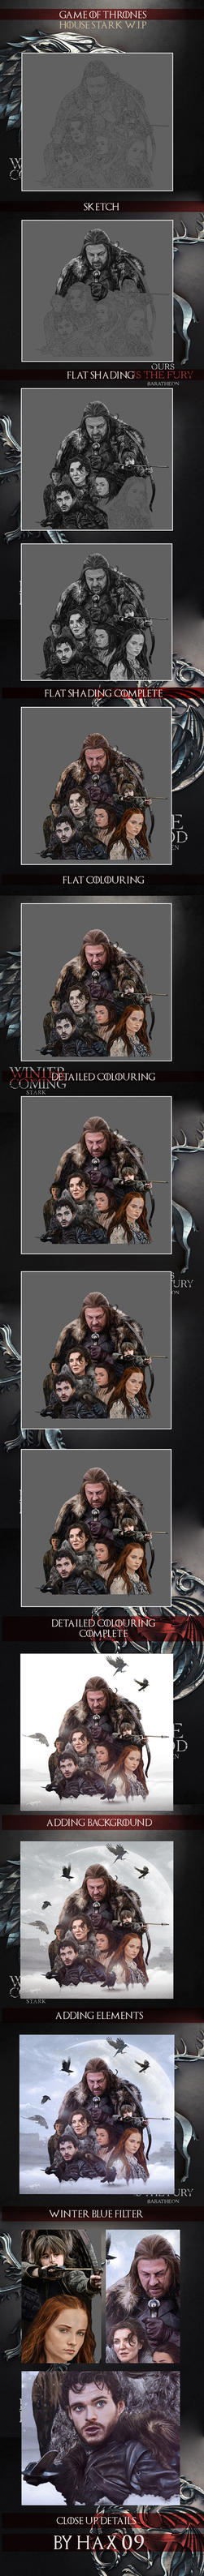 House Stark: Game of Thrones W.I.P by Hax09